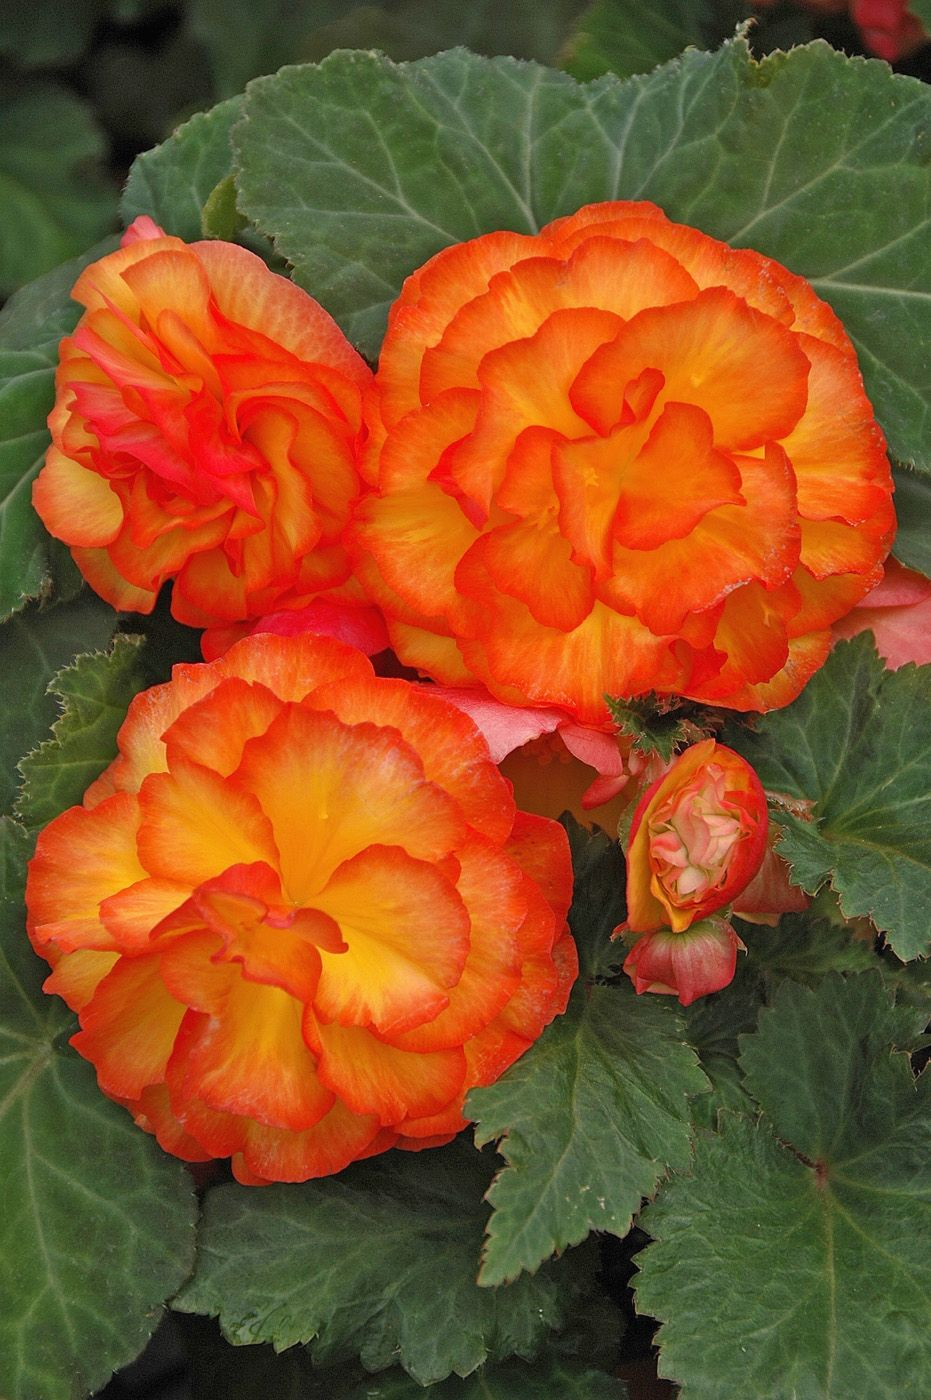 Begonias Pictures With Names Publications May Download Photograph At 200 Ppi Top Bottom Tuberous Begonia Flower Seeds Bonsai Flower